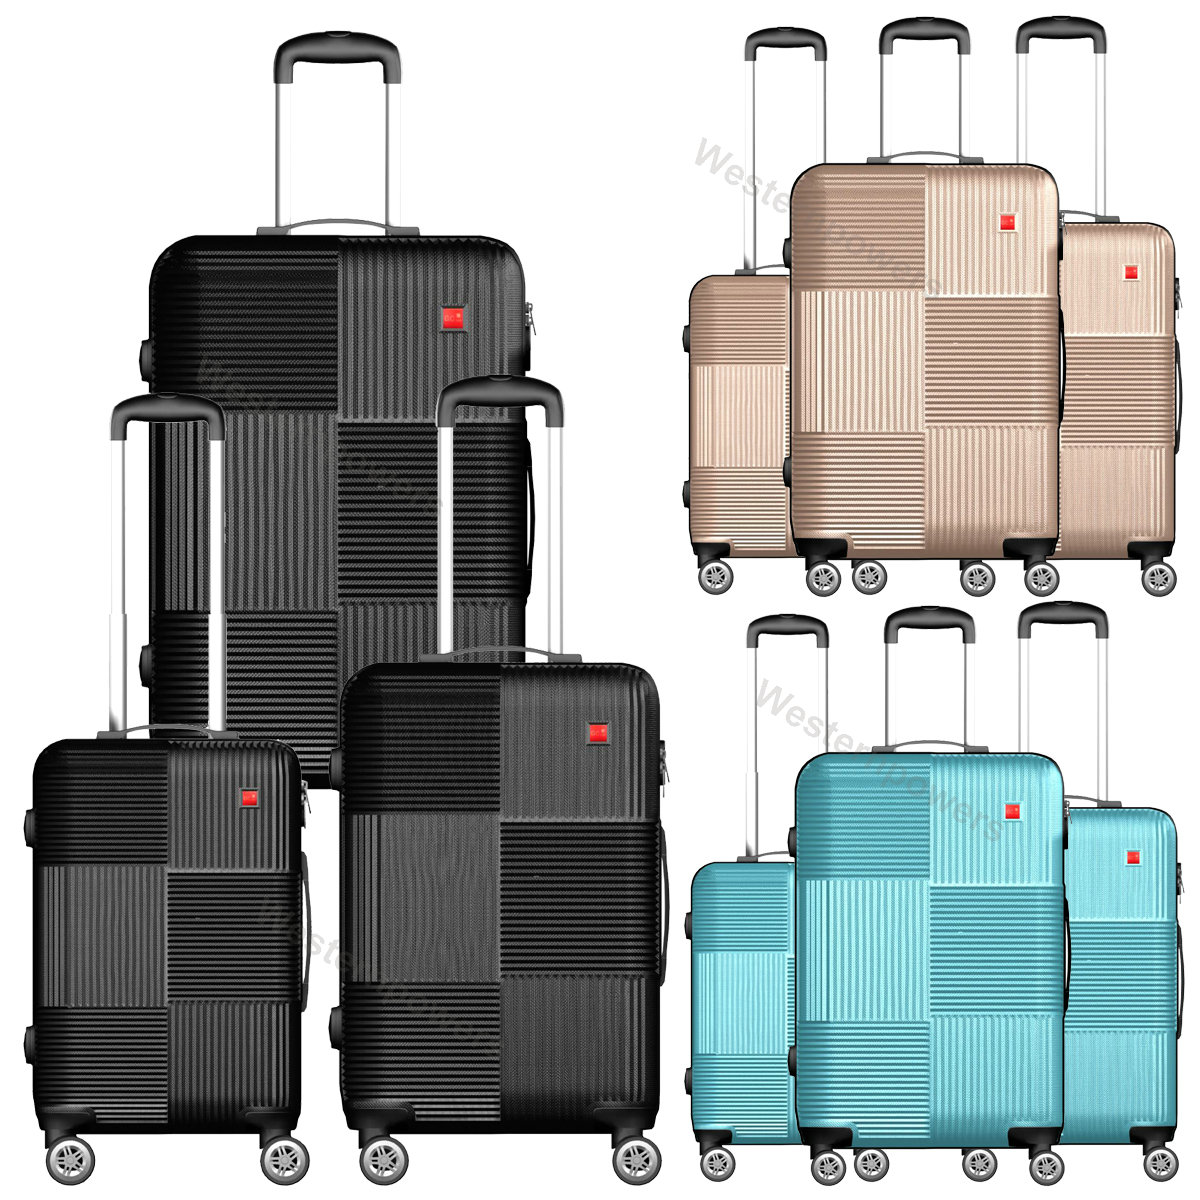 40d8775f3836 Details about 3-Piece Hardside Luggage Set with Spinner Wheels Lightweight  20'' 24'' 28''